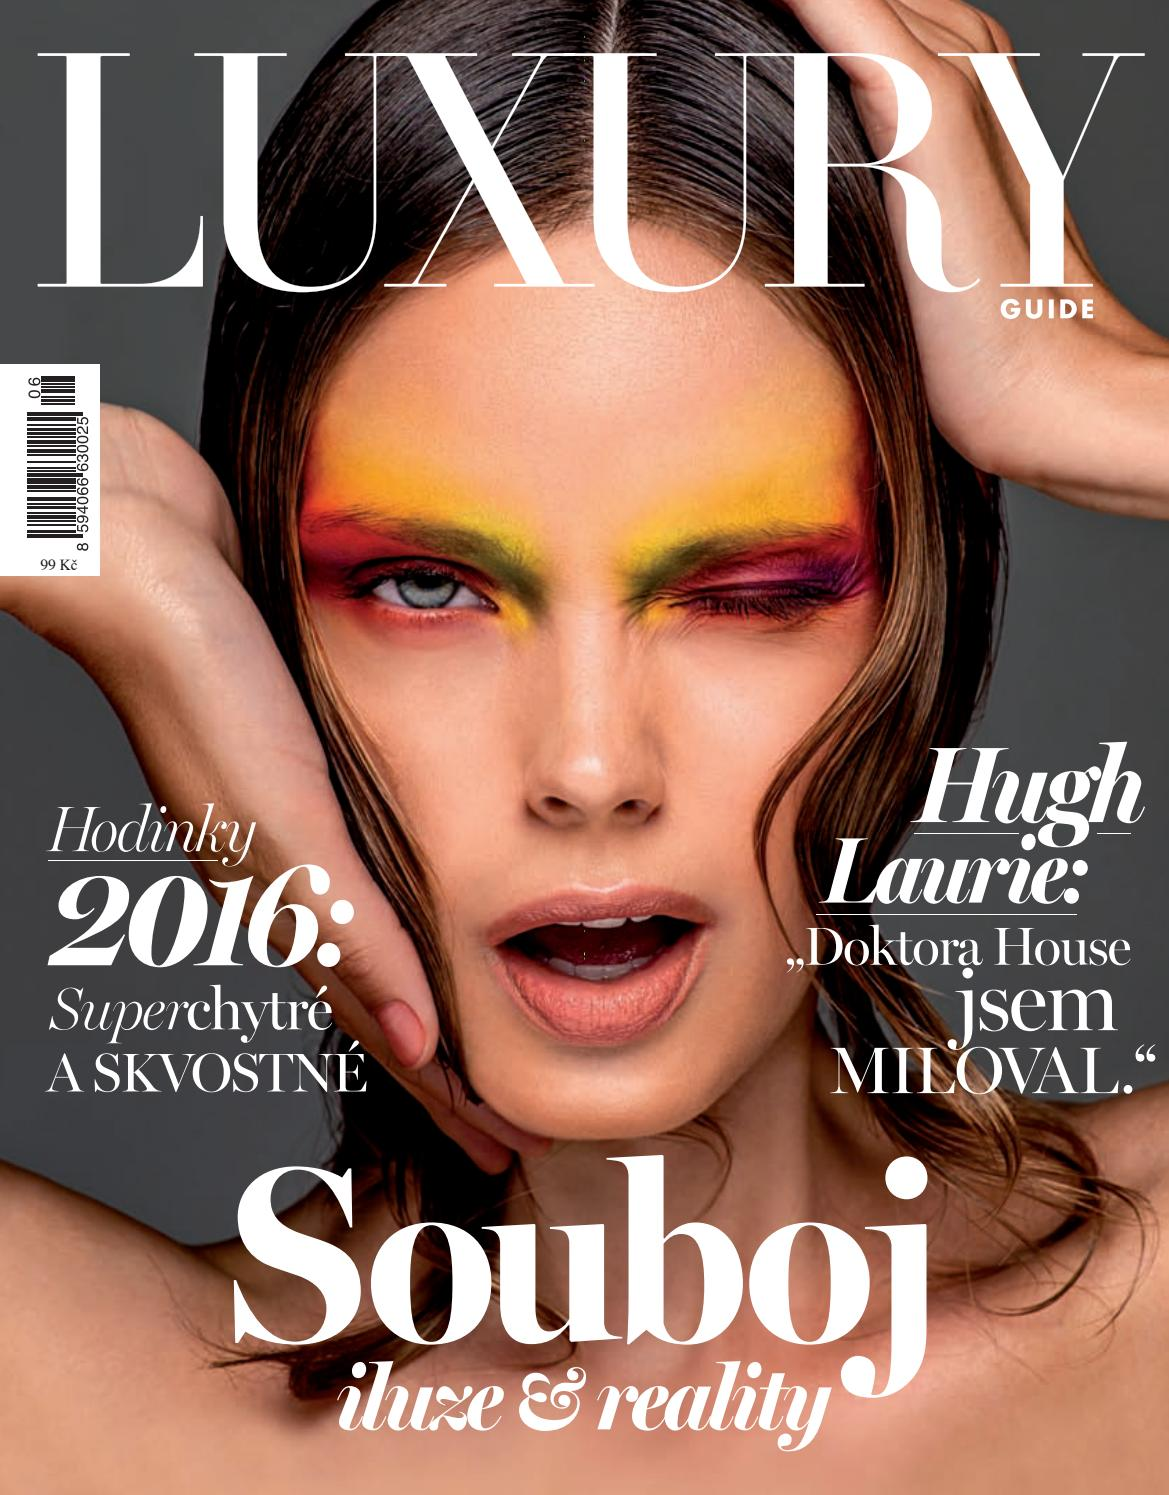 Luxury Guide 06 2016 by LuxuryGuideCZ - issuu 51493c8716